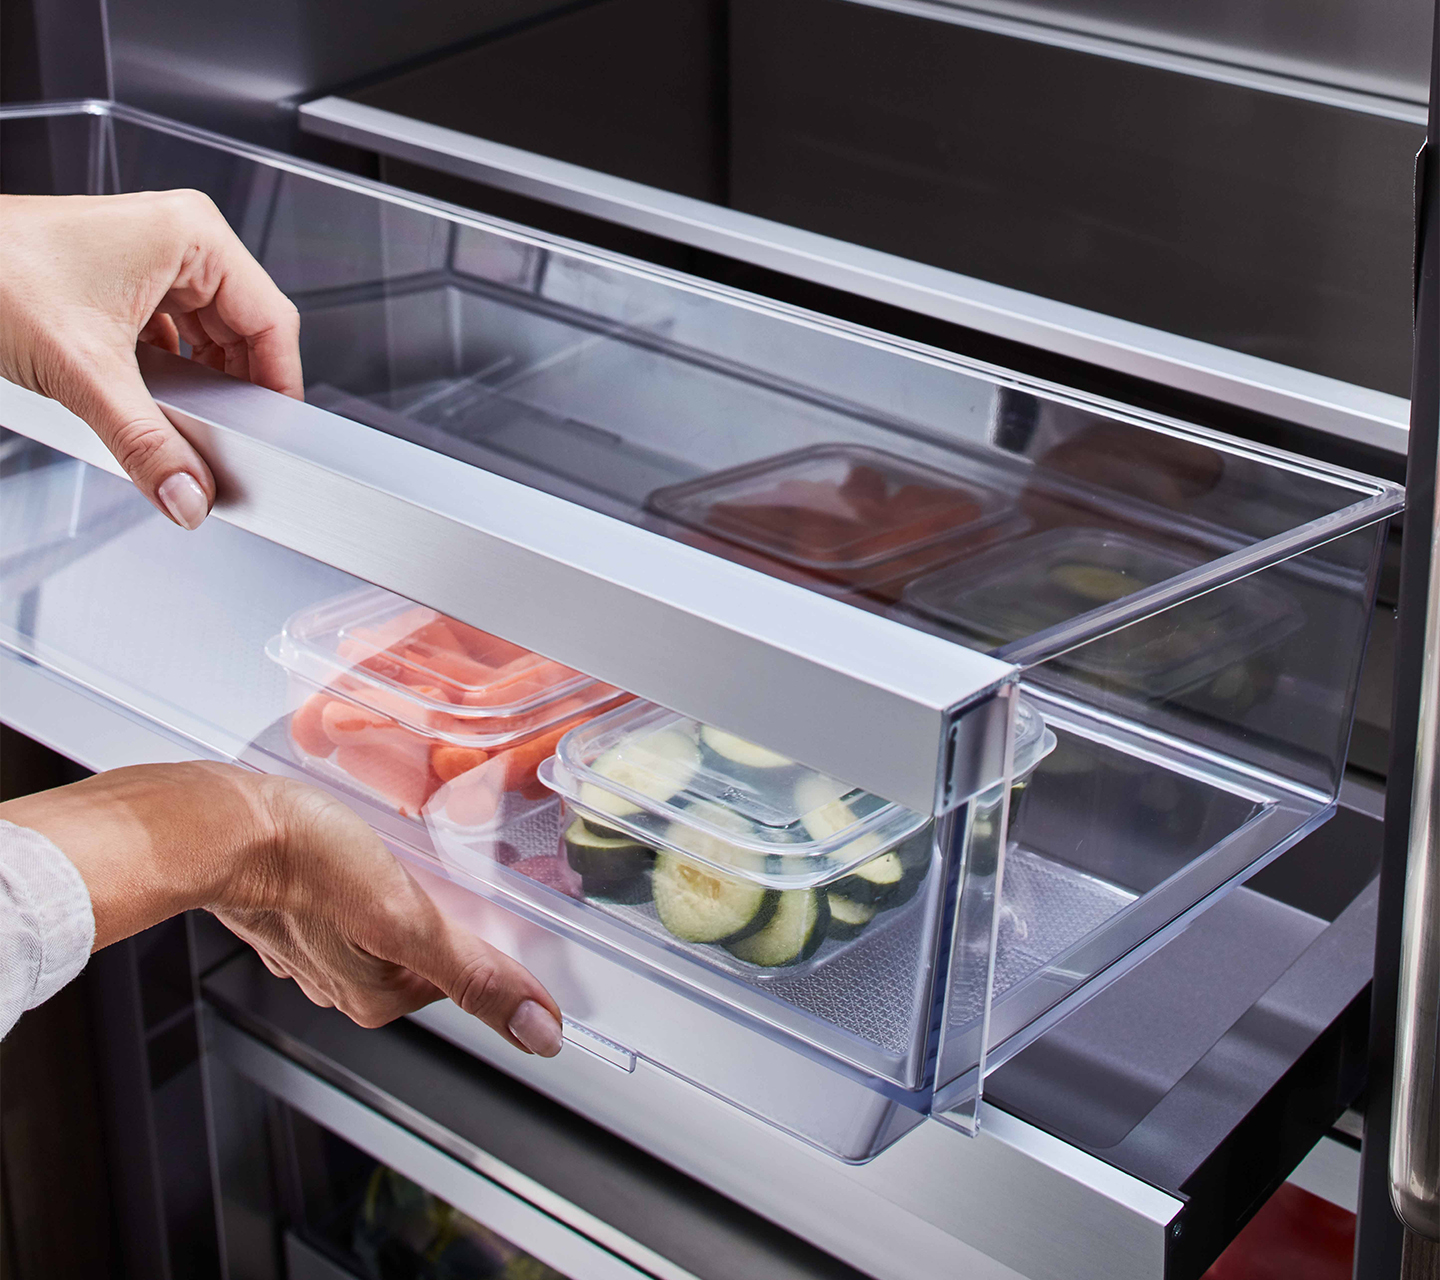 Purposeful Design with Lift and Go™ Bins in Built-in Refrigerator